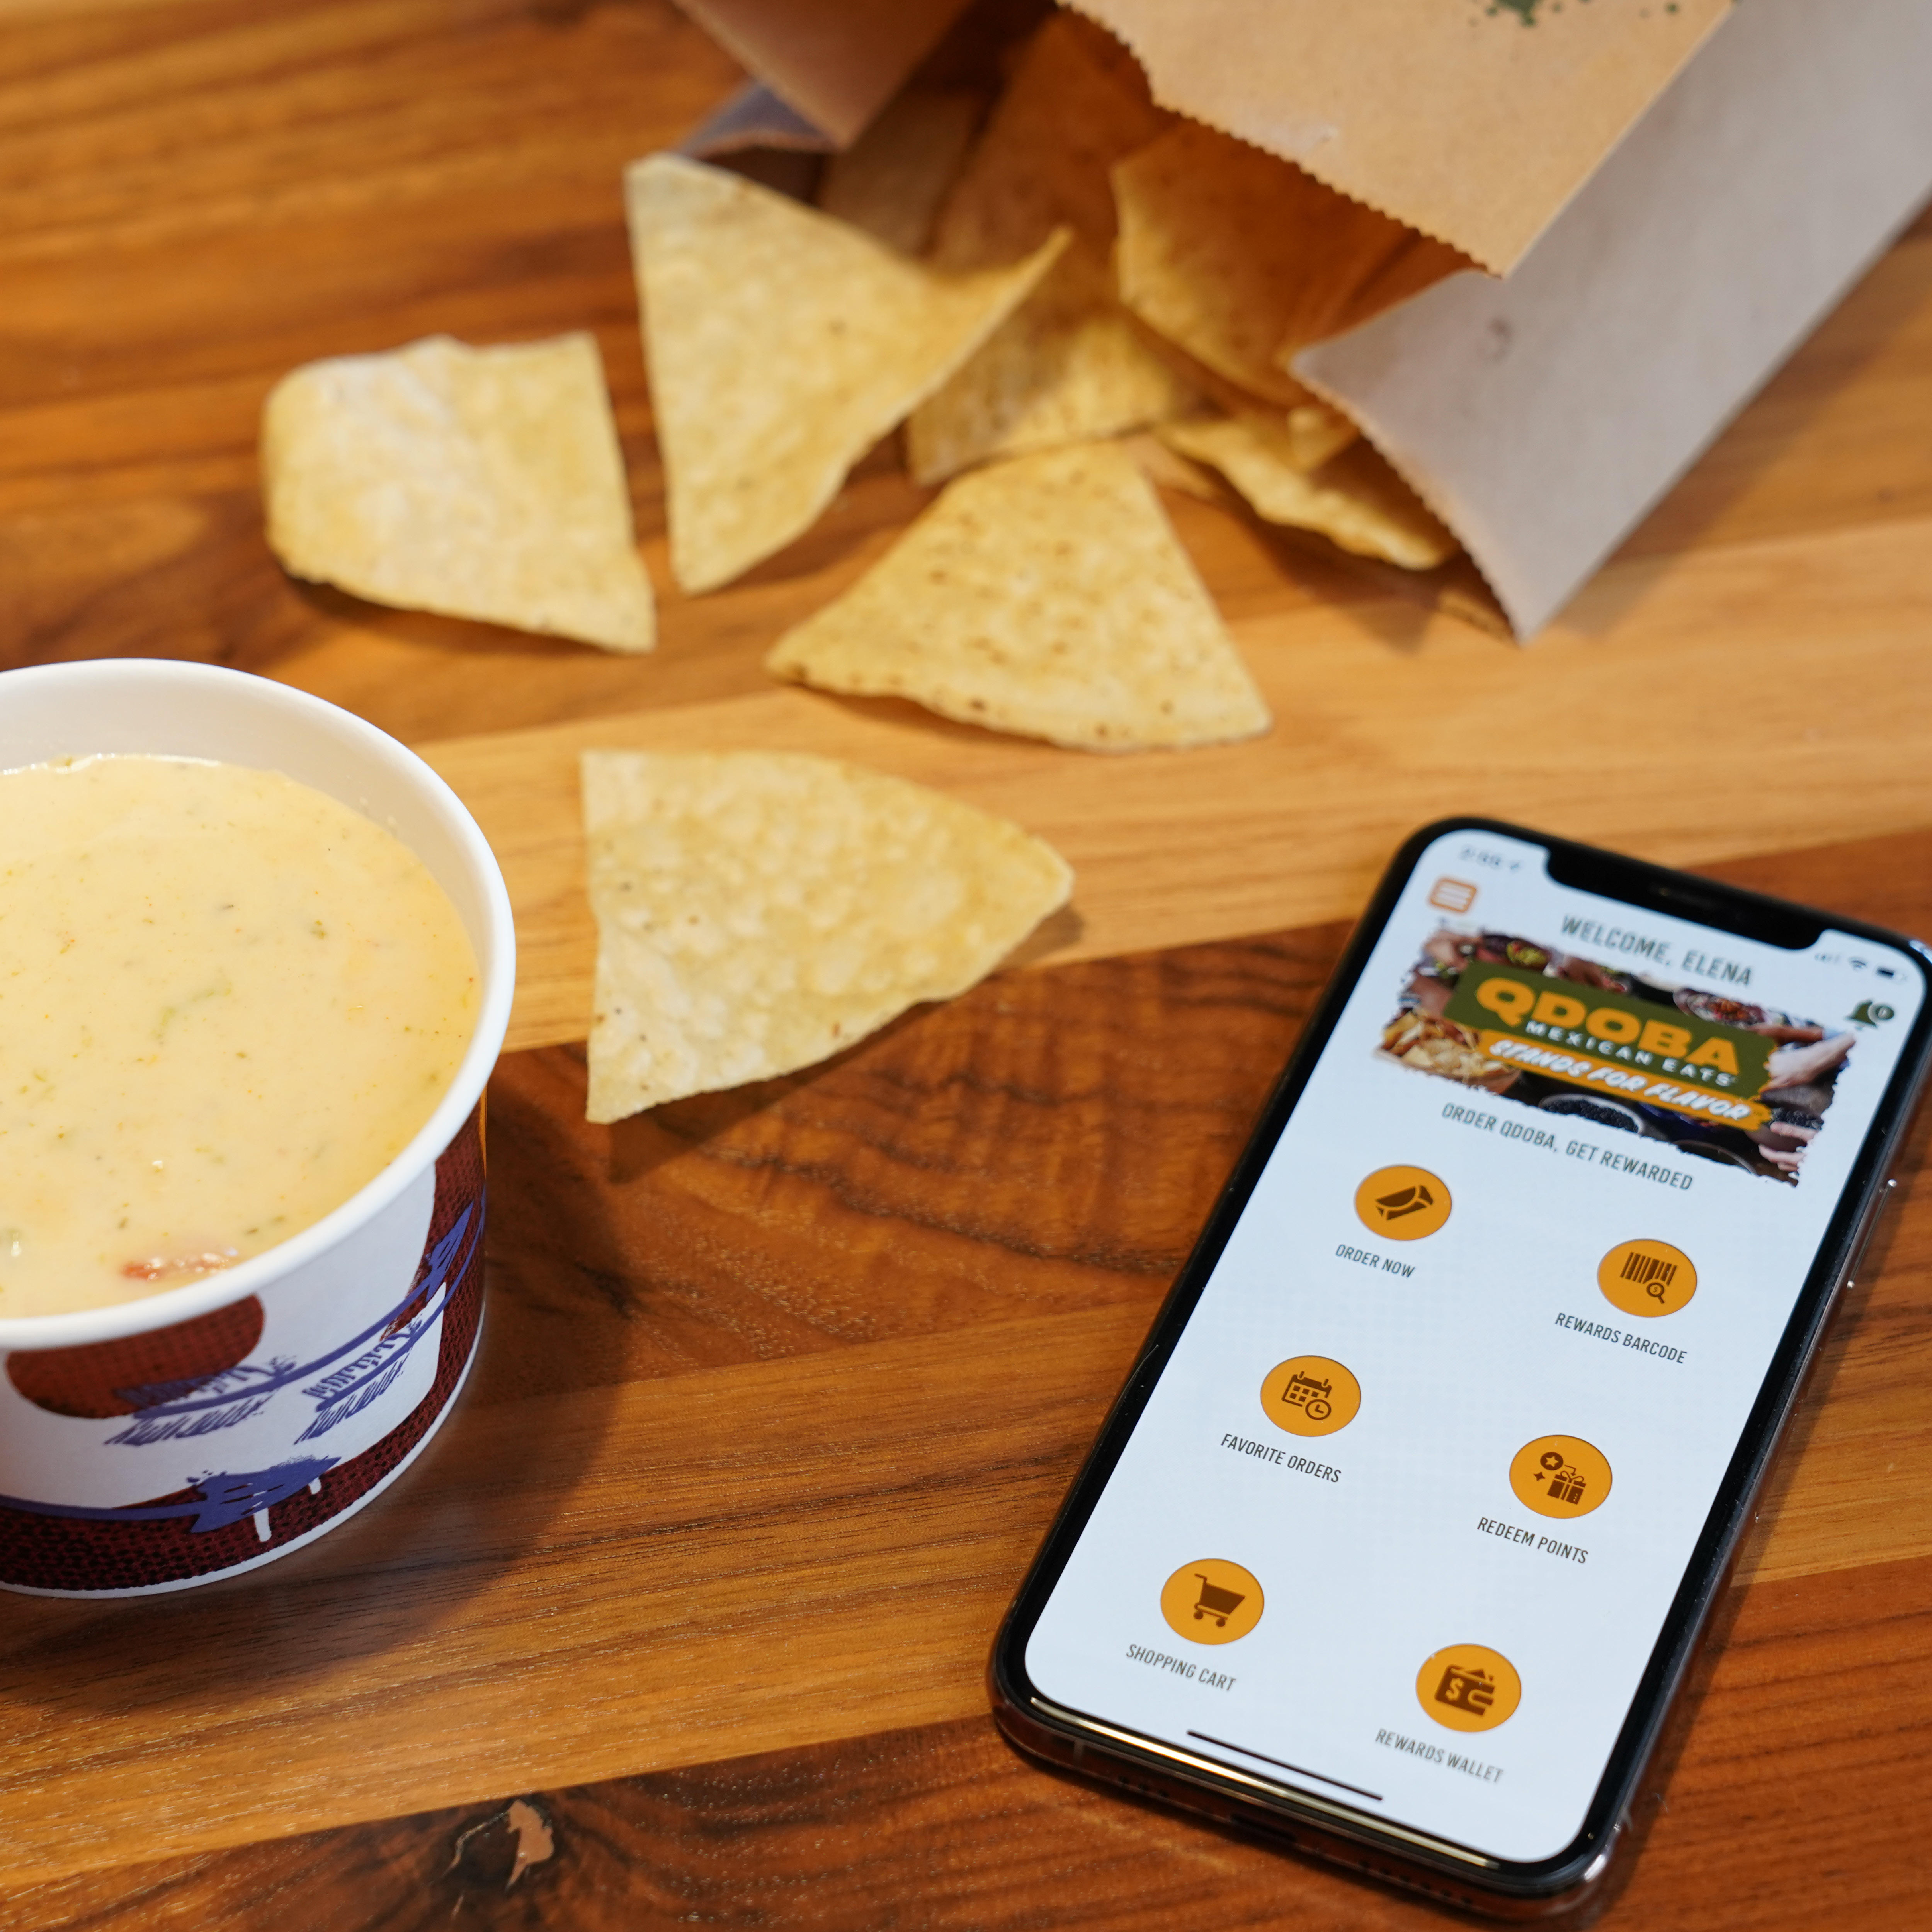 Earn points, score rewards, and place your order on the QDOBA Rewards app.